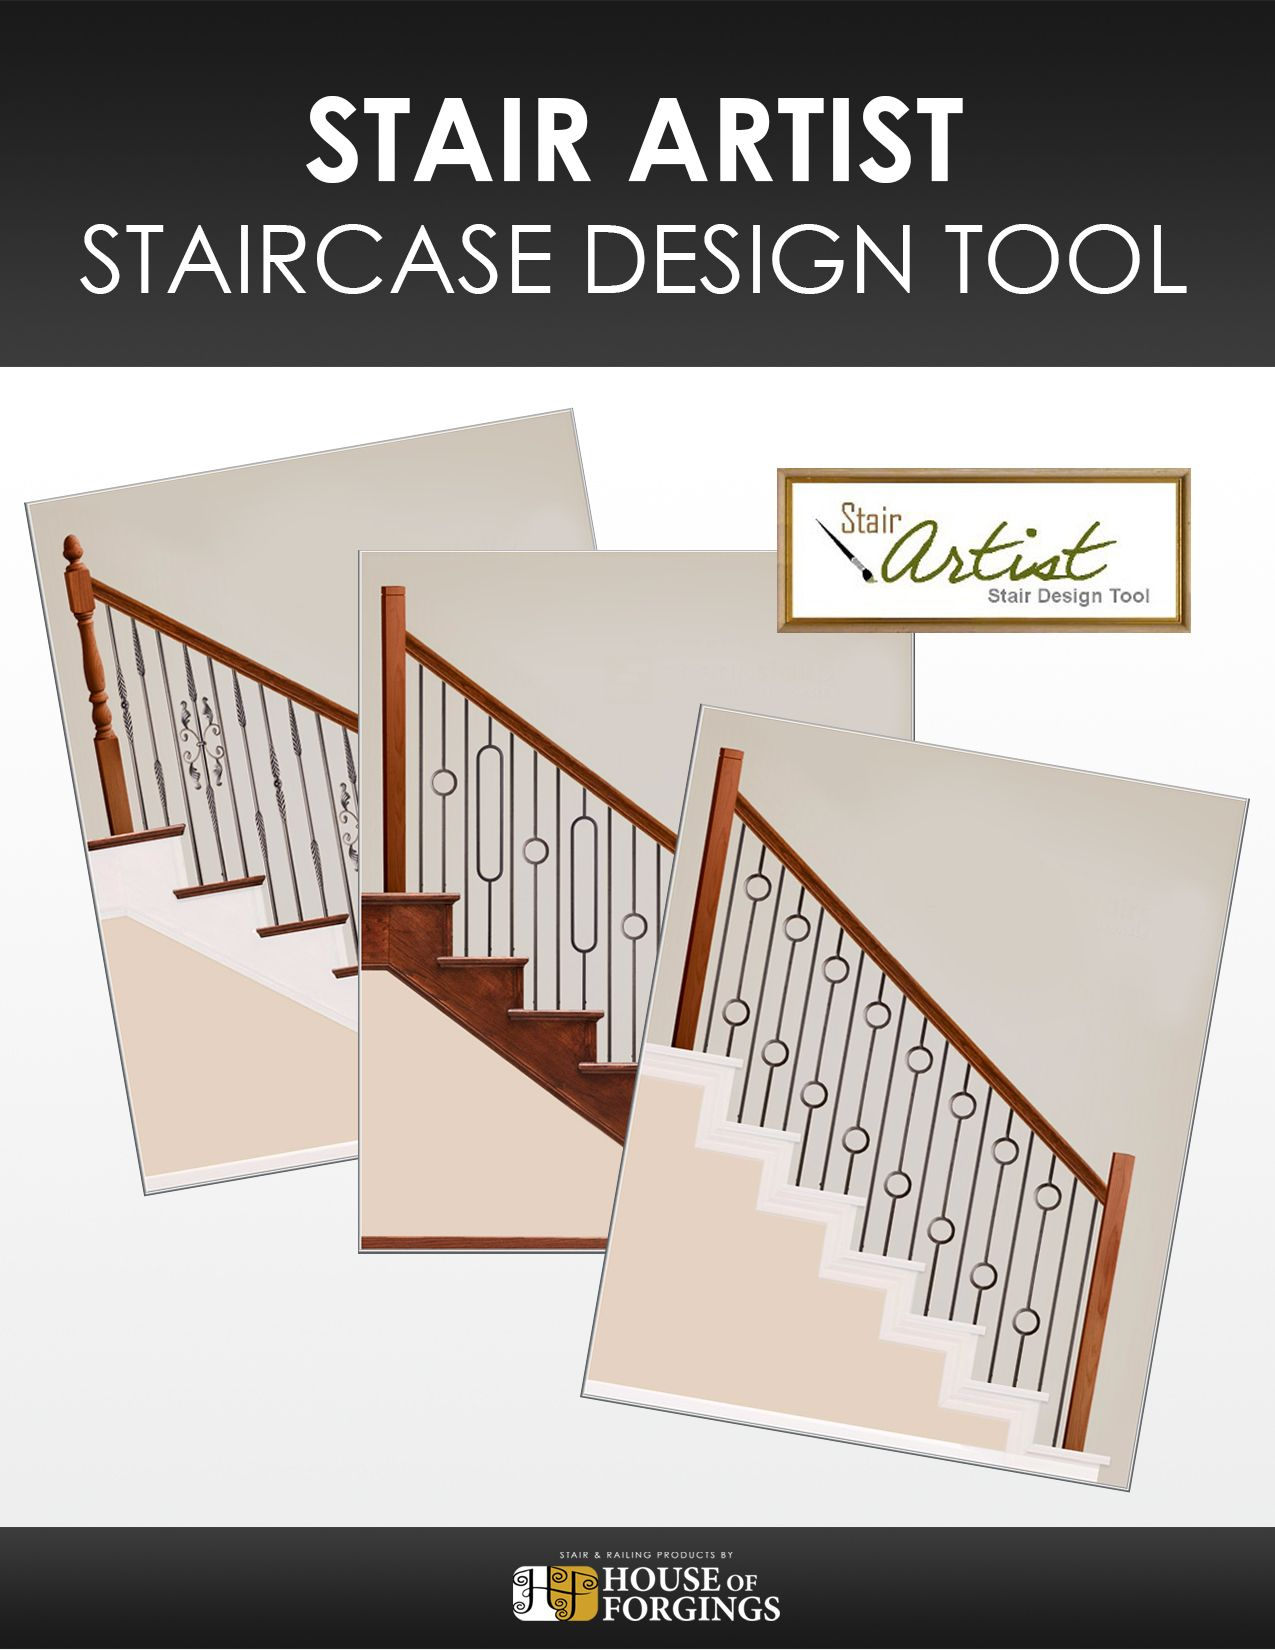 Create your perfect stair design by dragging and dropping balusters and newels into over 27 staircase